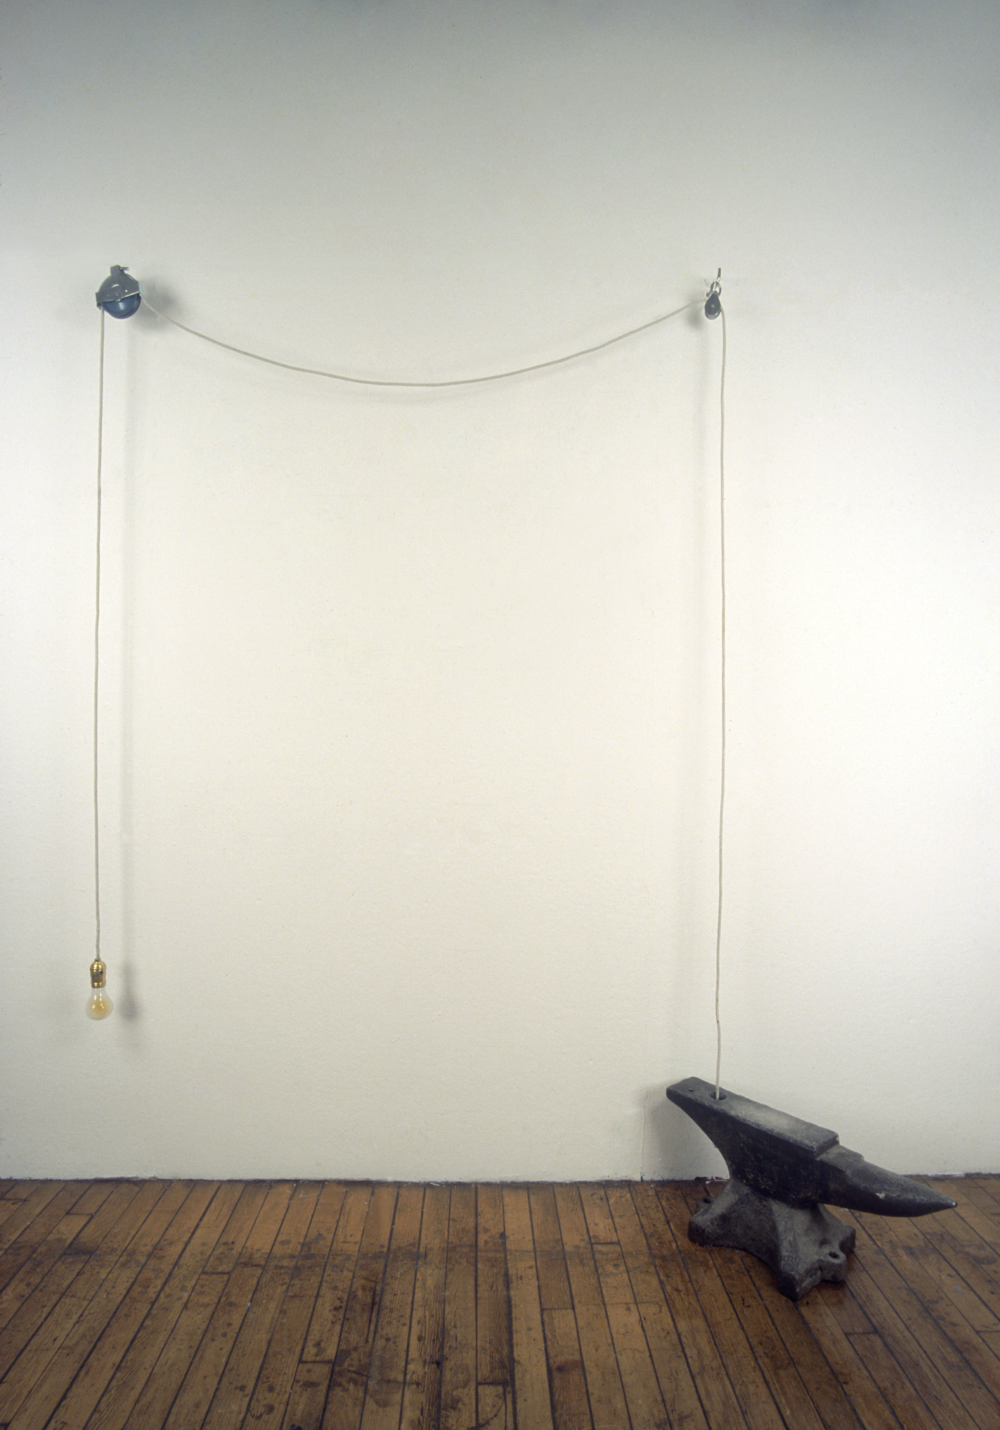 """It's Lightweight""  Light bulb, rope, pulleys, hooks and anvil  Dimensions variable   2001"